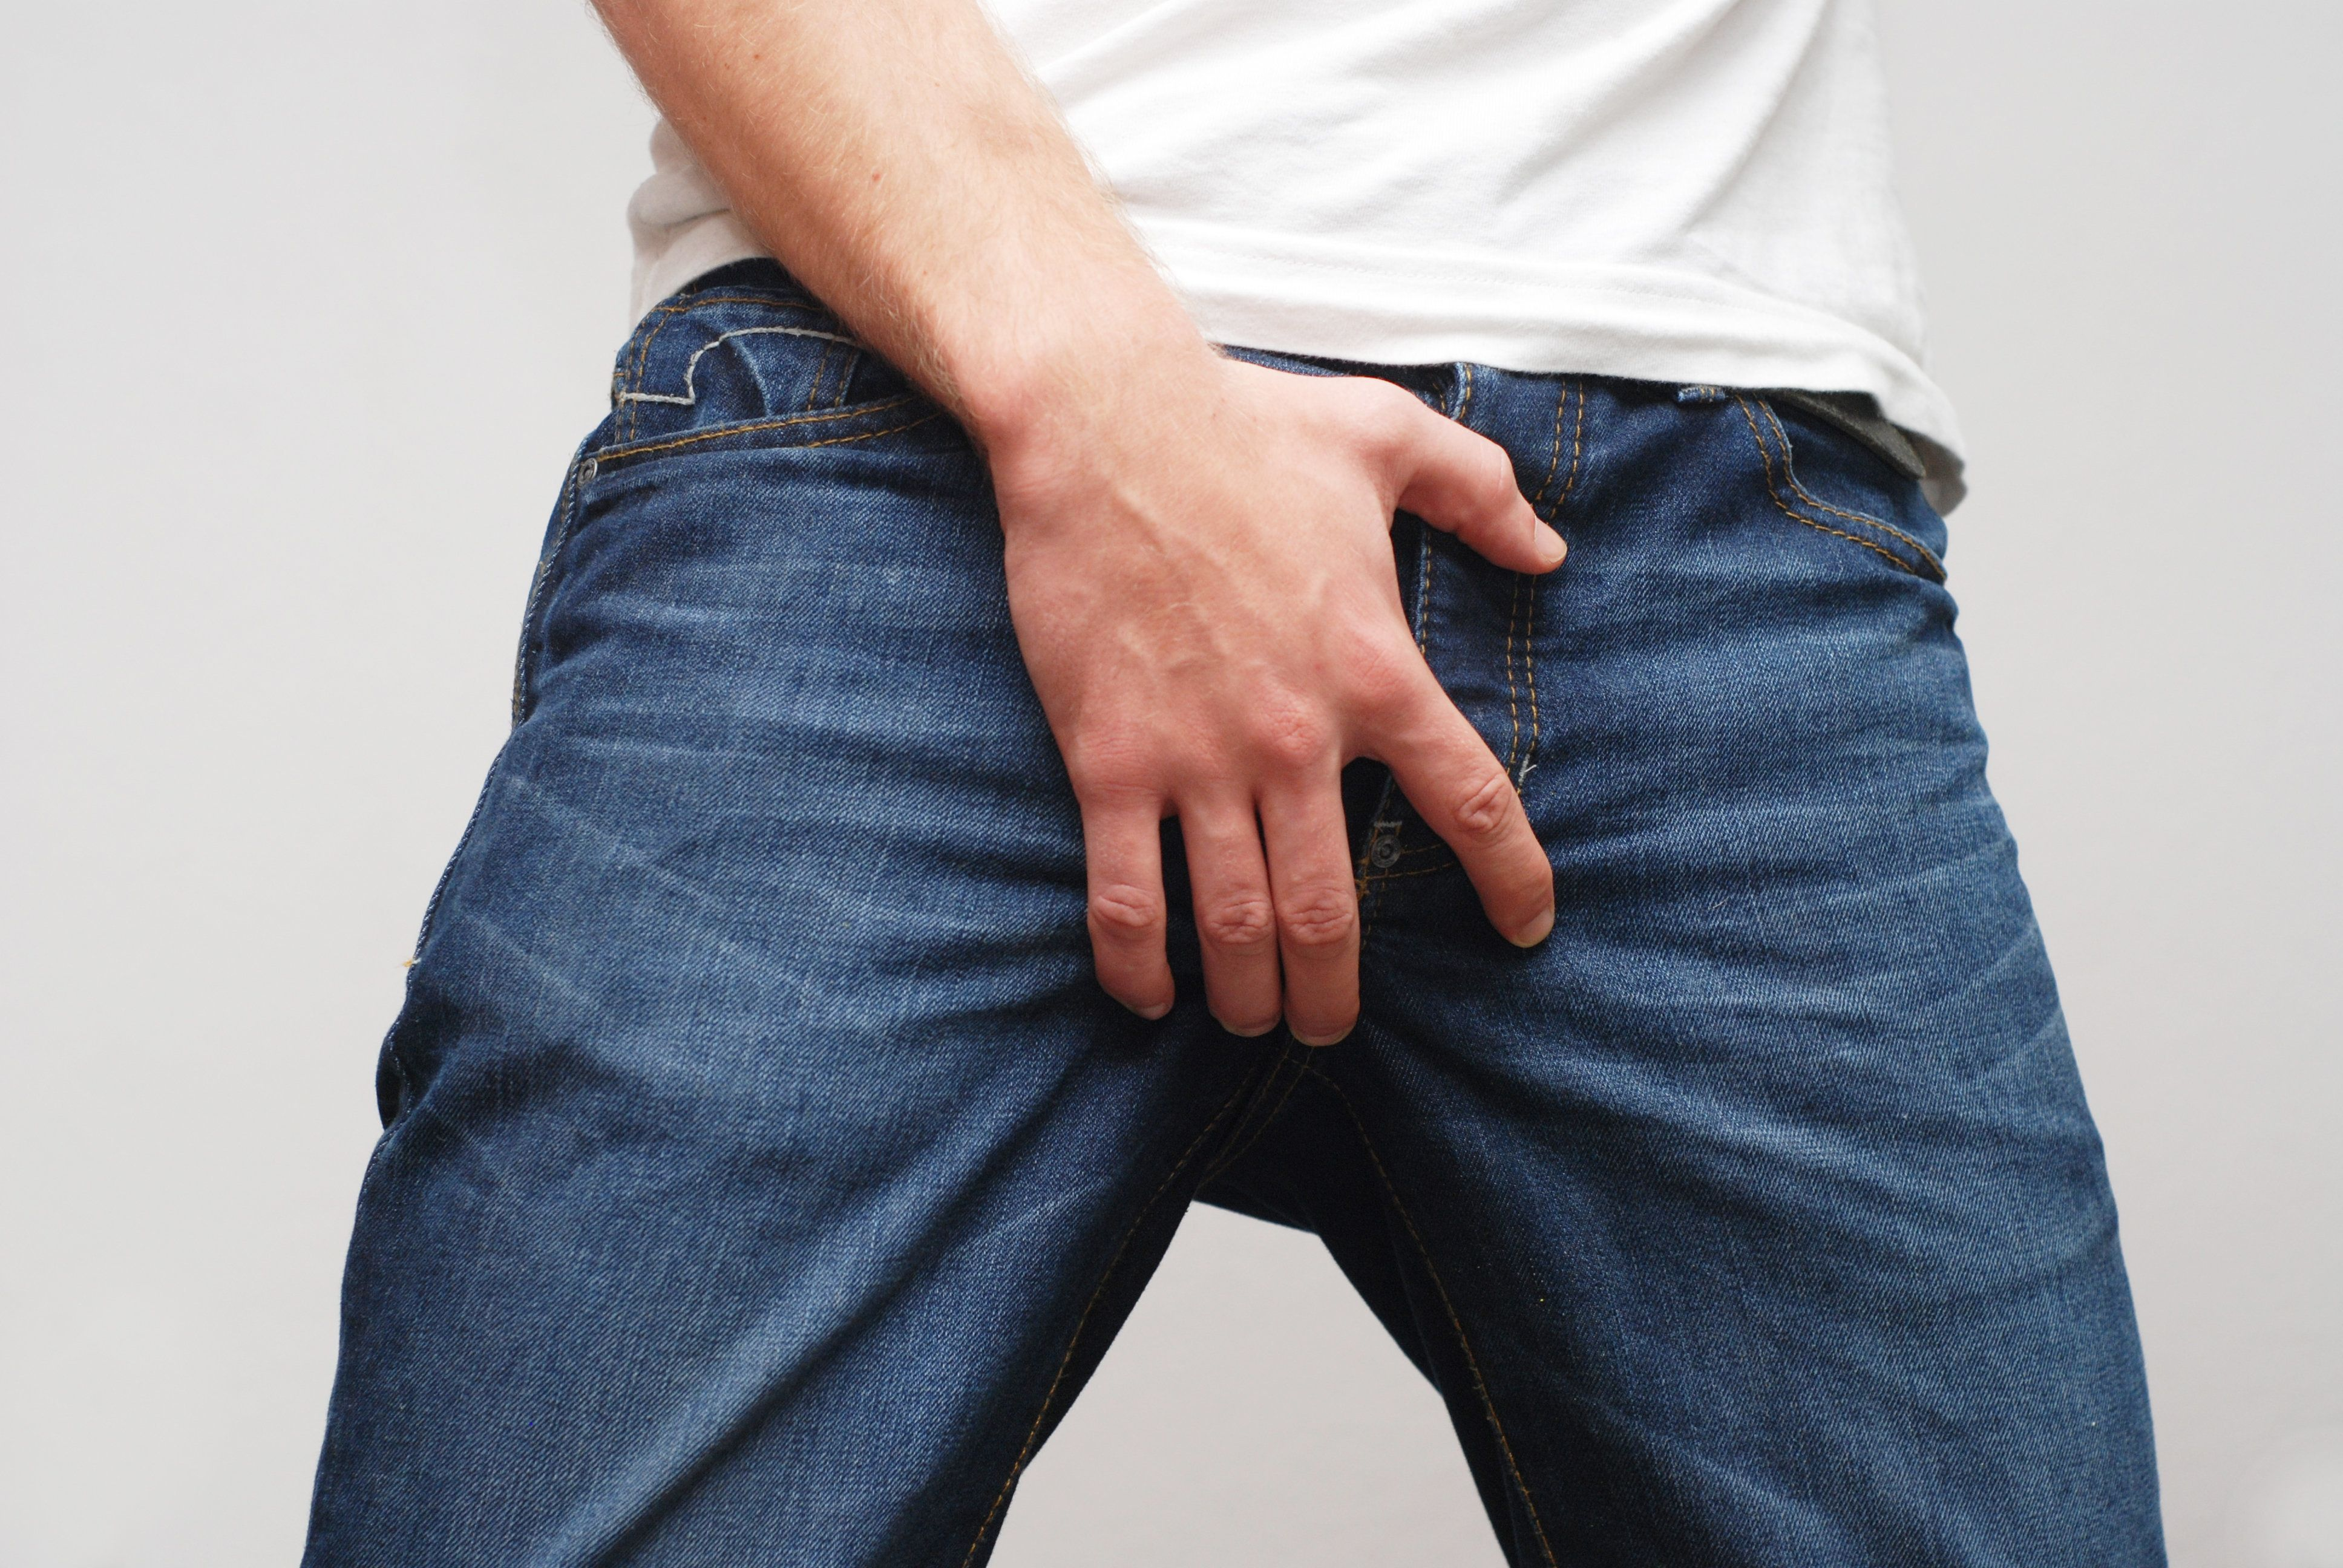 man with blue jeans close up